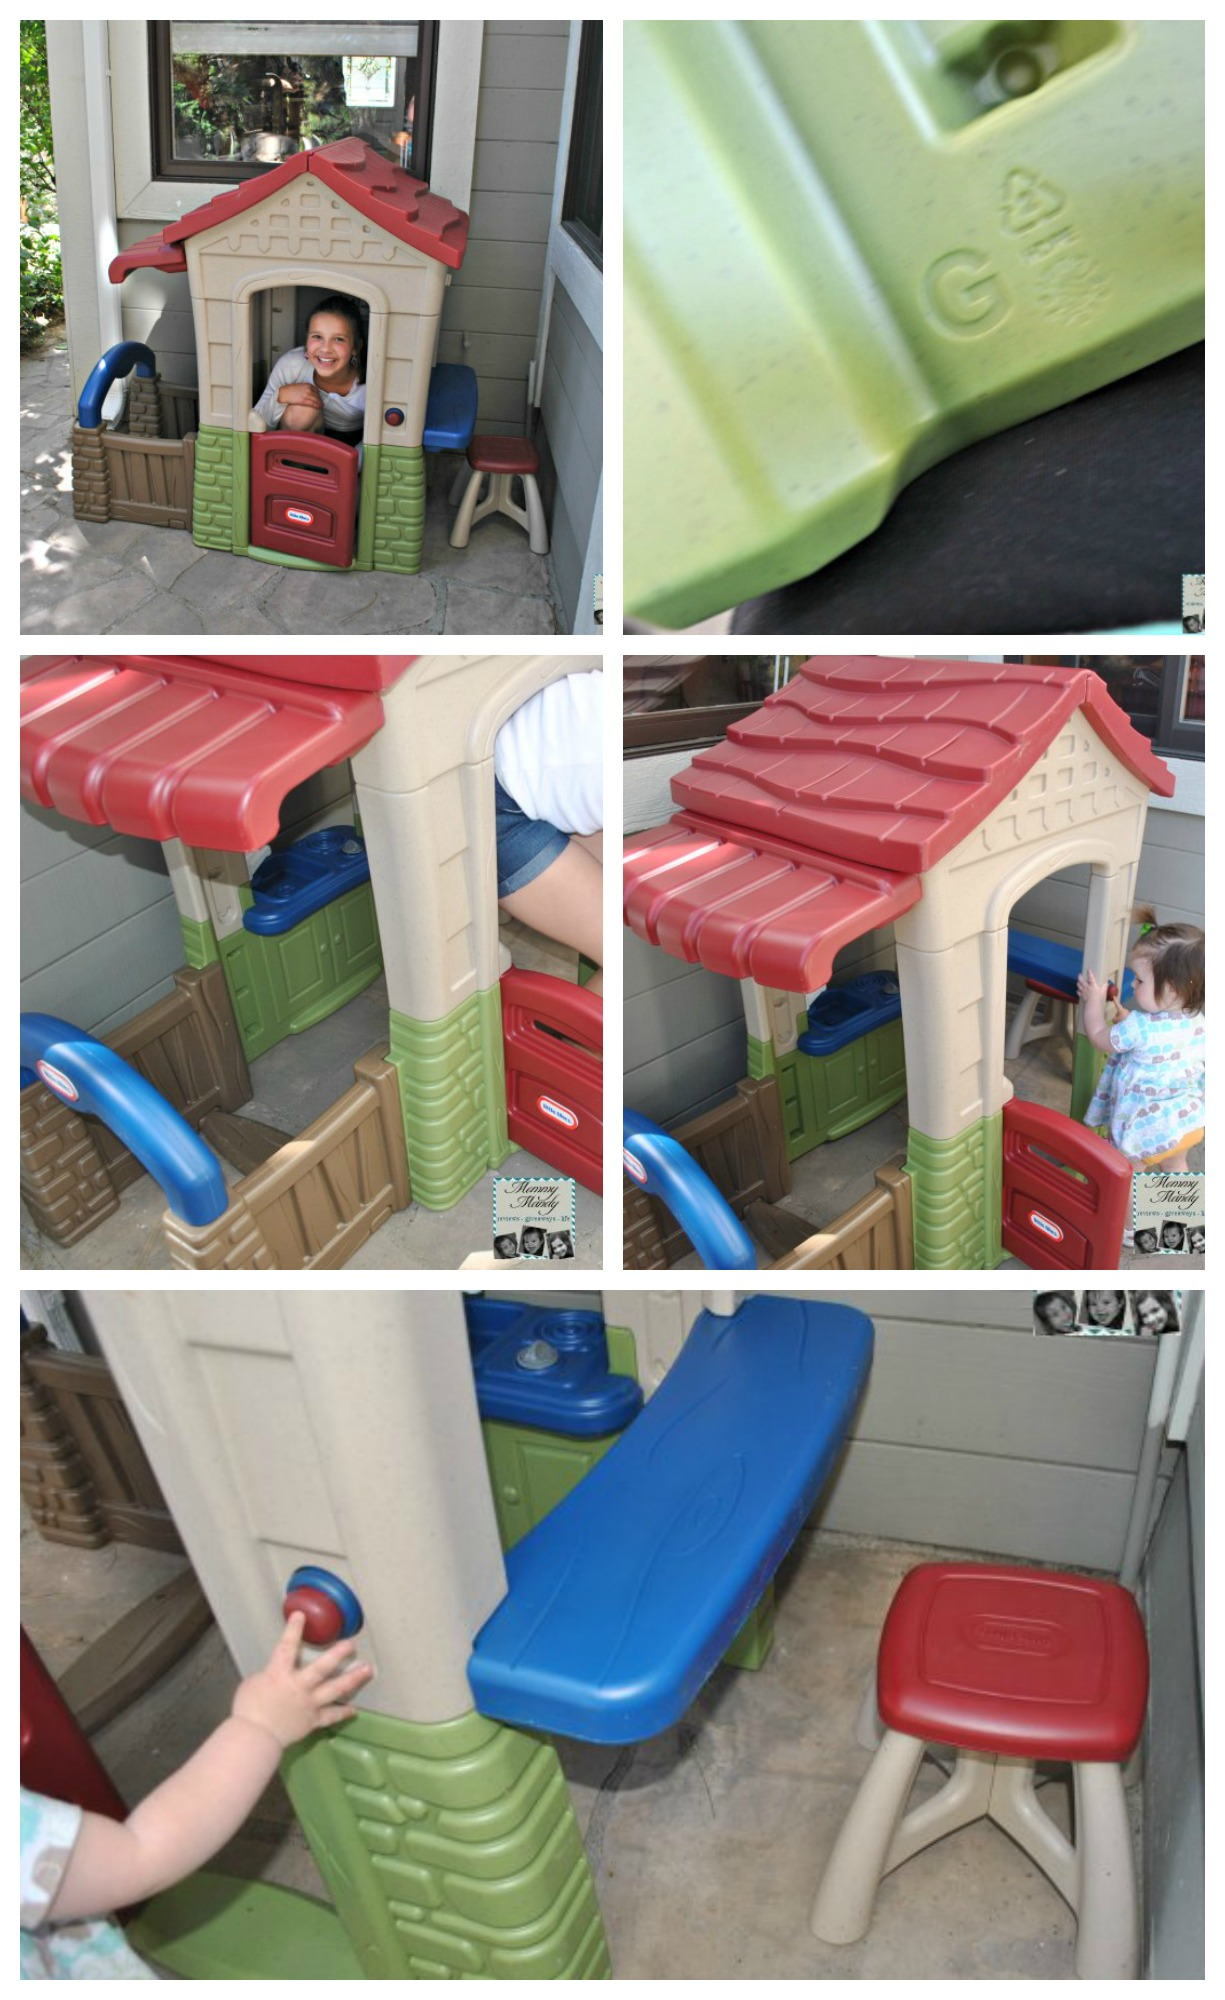 Charming Little Tikes Playhouse Made Of Plastic For Playground Decor Ideas